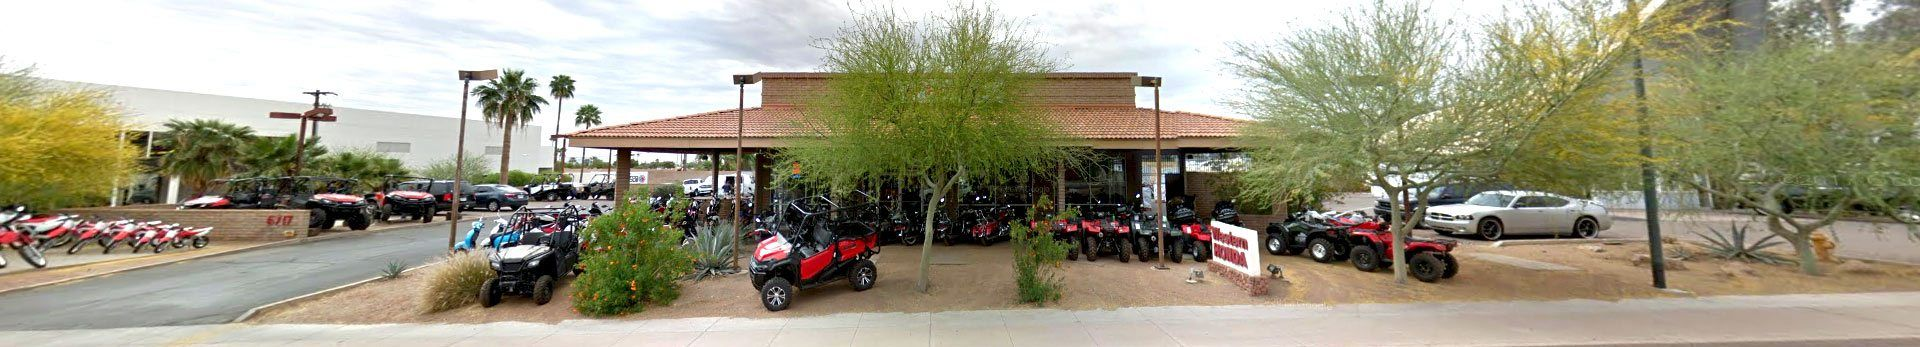 About us | Western Honda Powersports located in Scottsdale ...